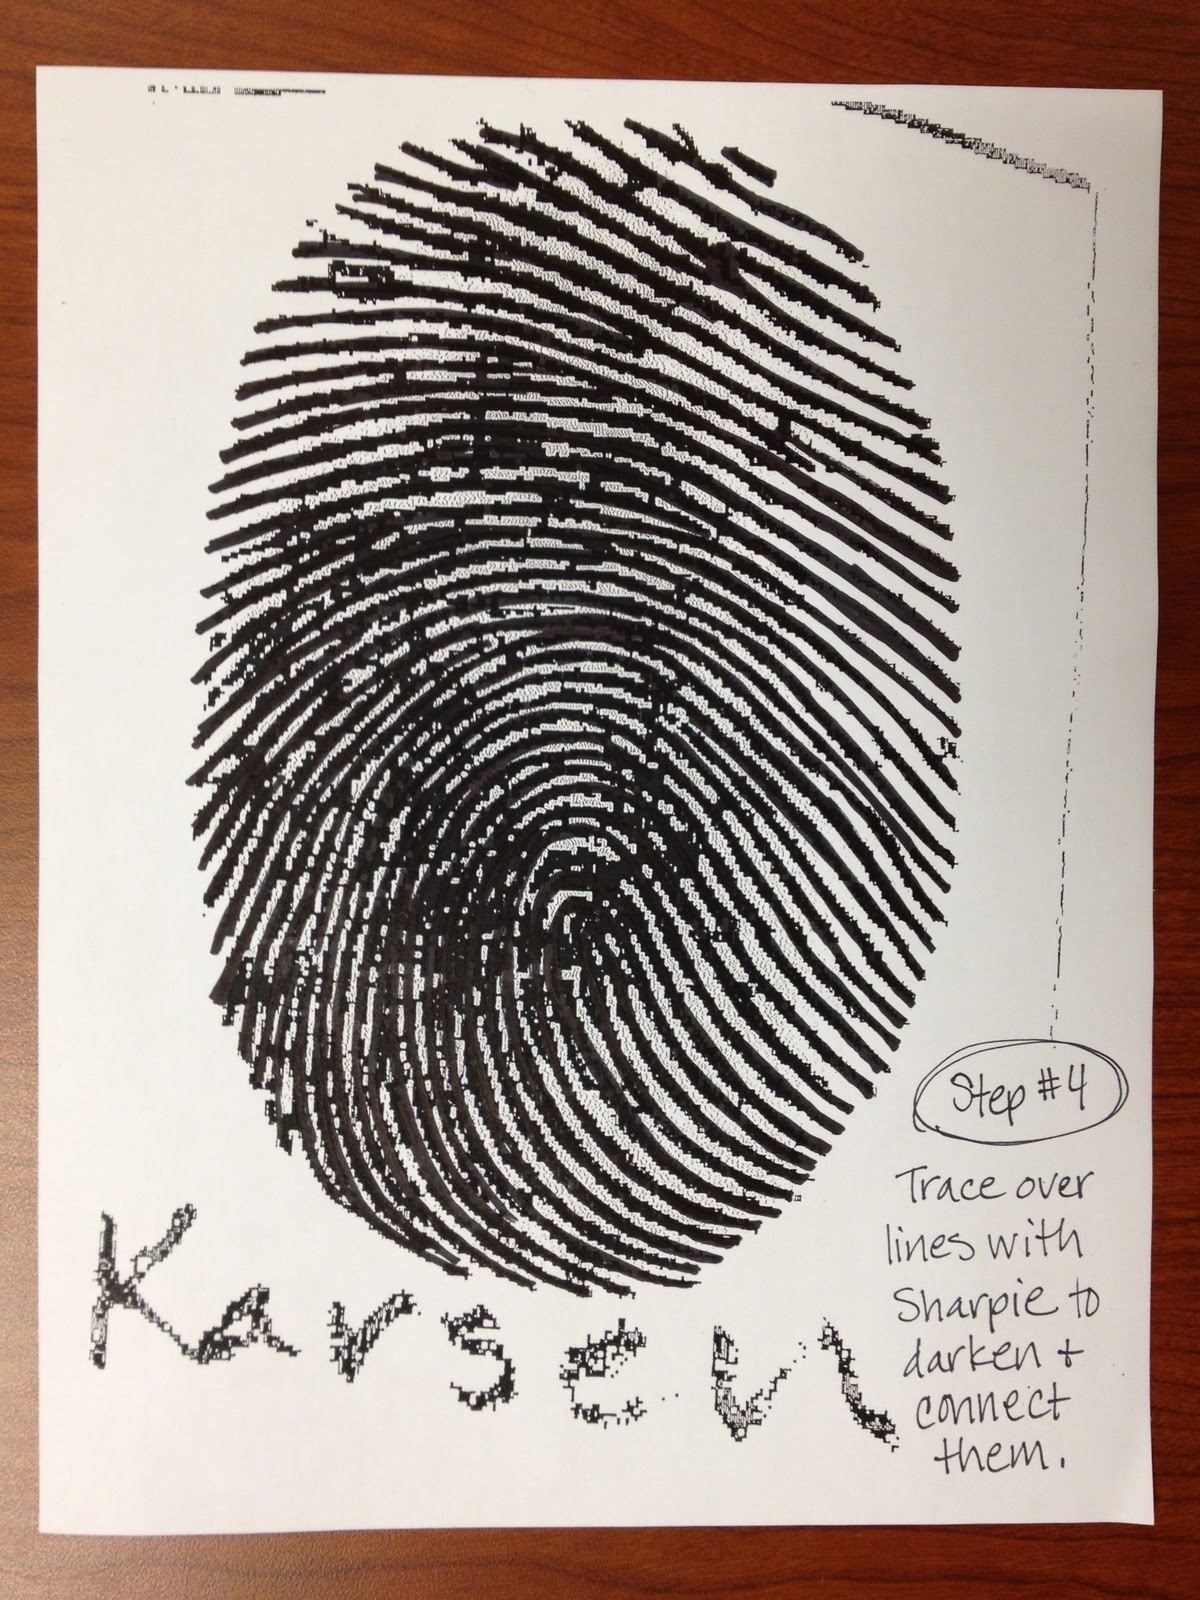 thumbprint self portrait teachkidsart thumbprint self portrait